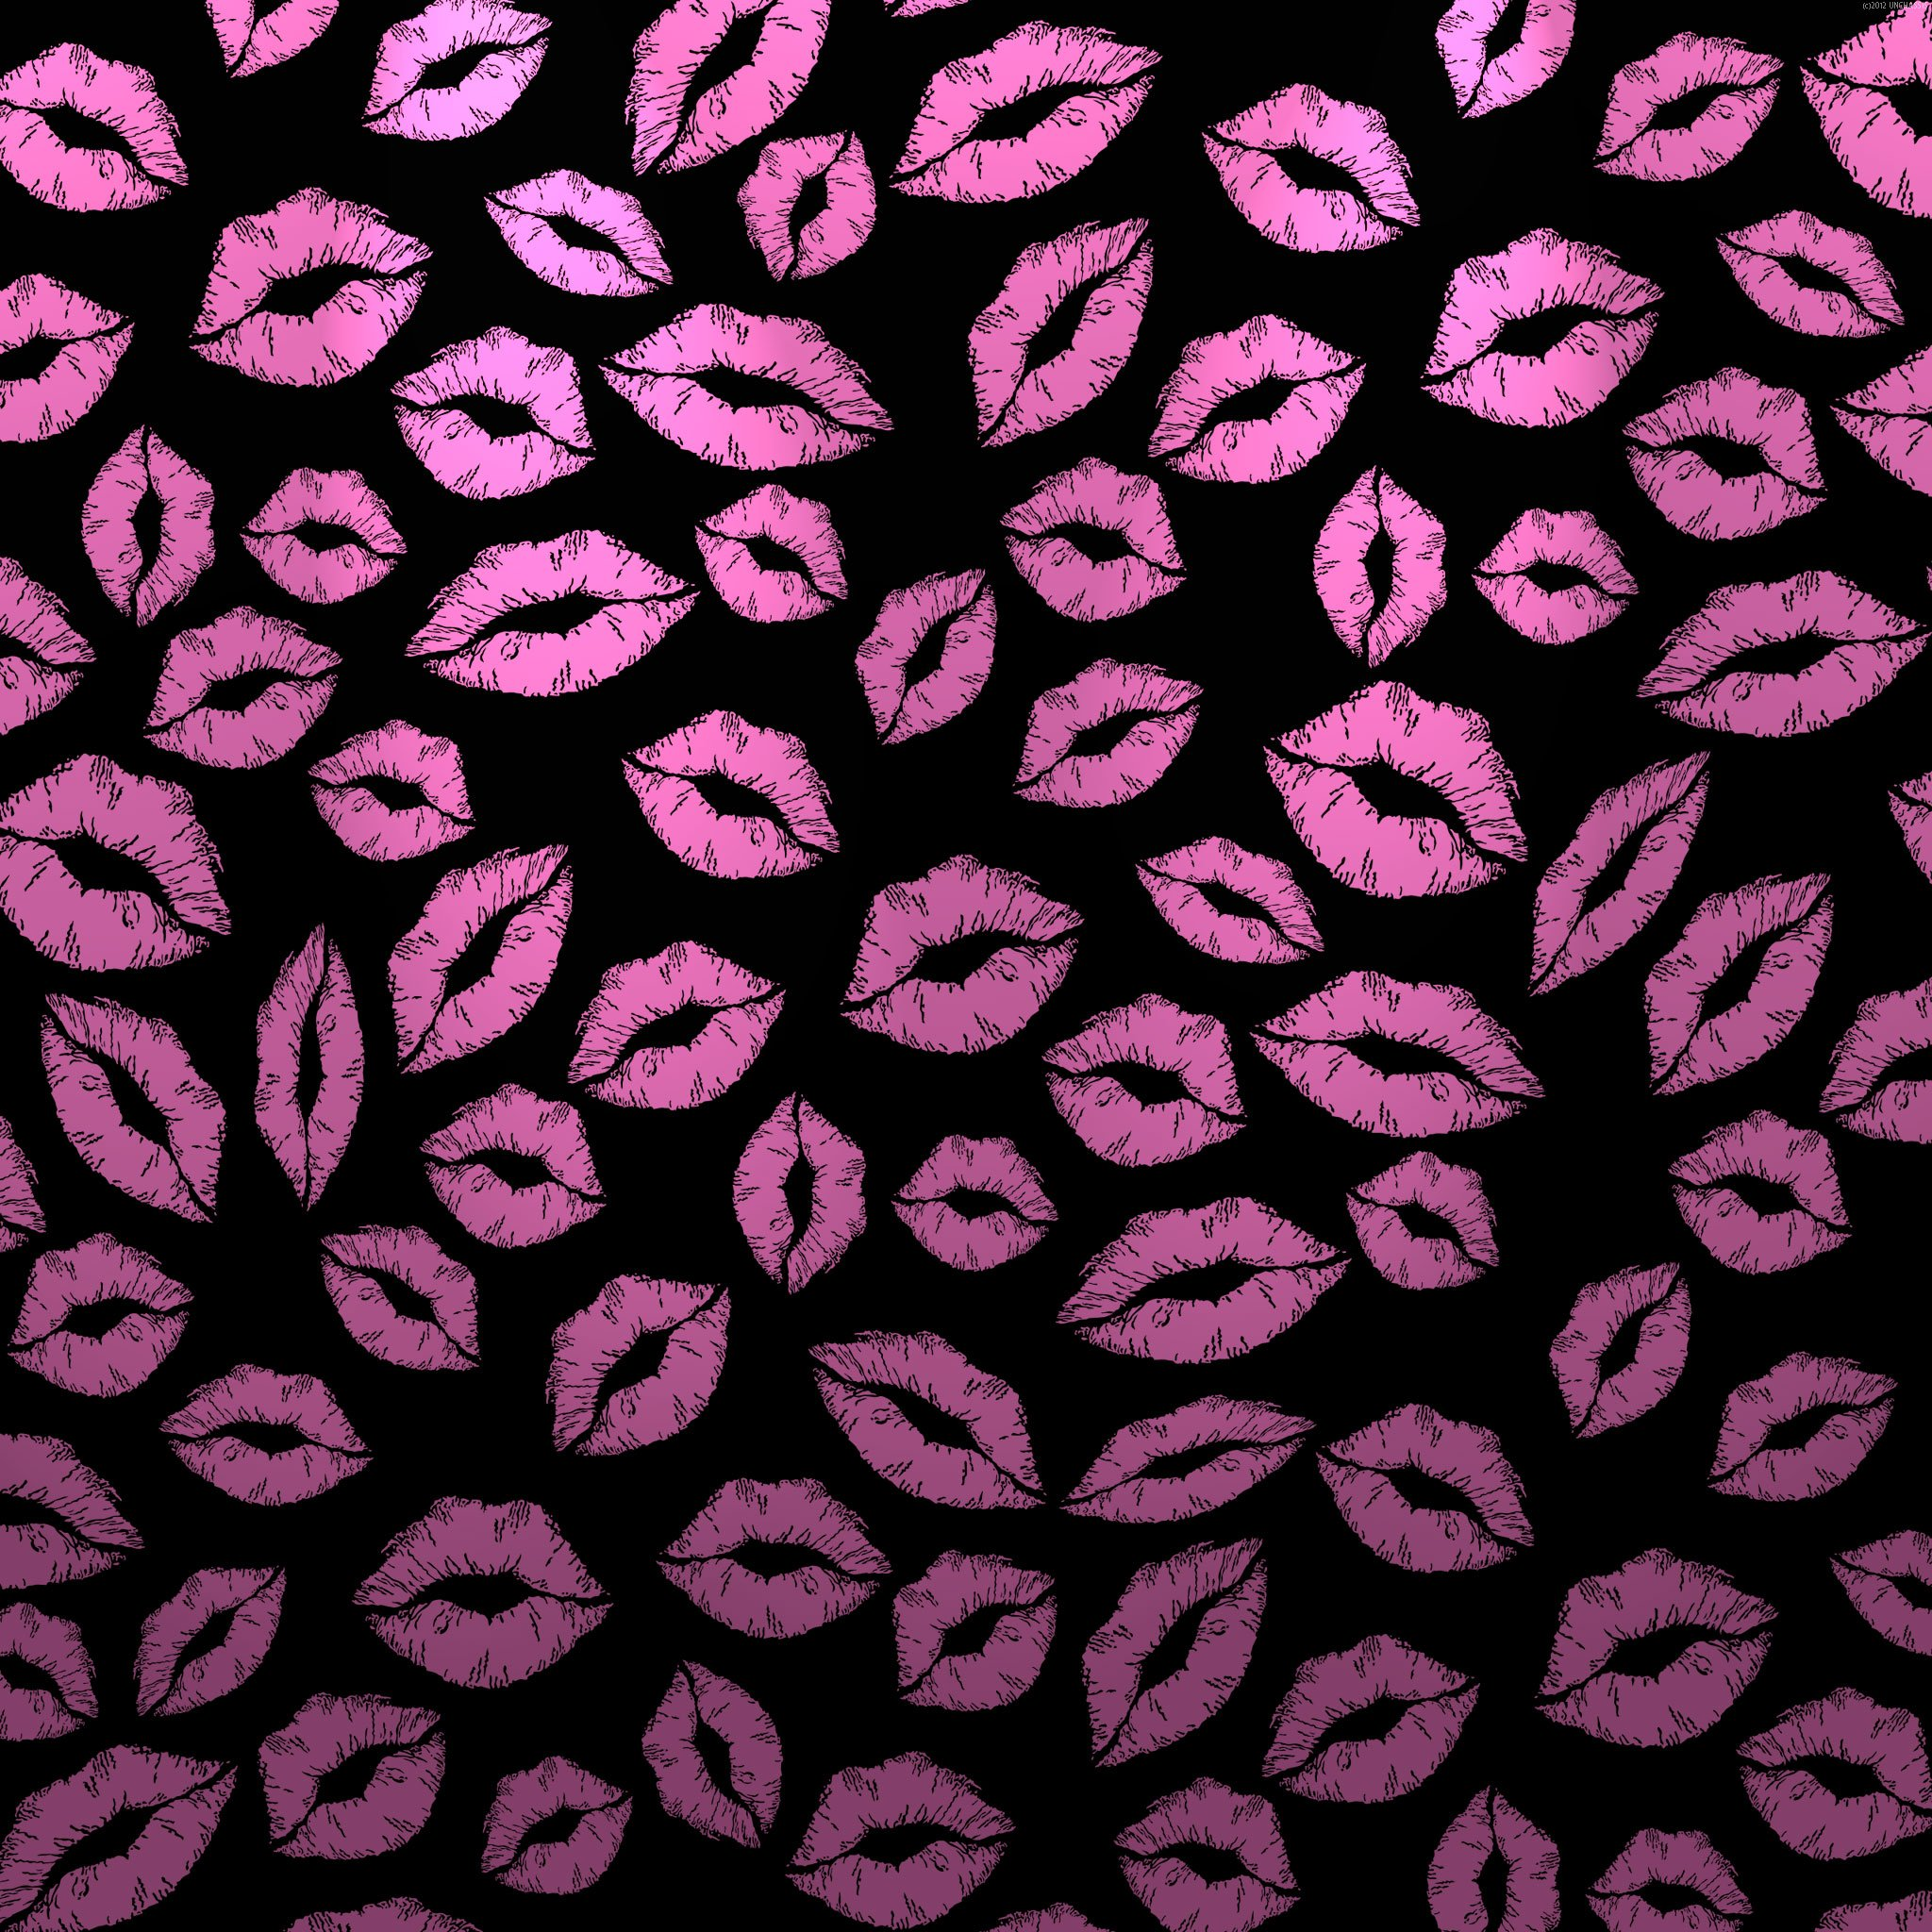 [48+] Pink and Black Wallpaper on WallpaperSafari